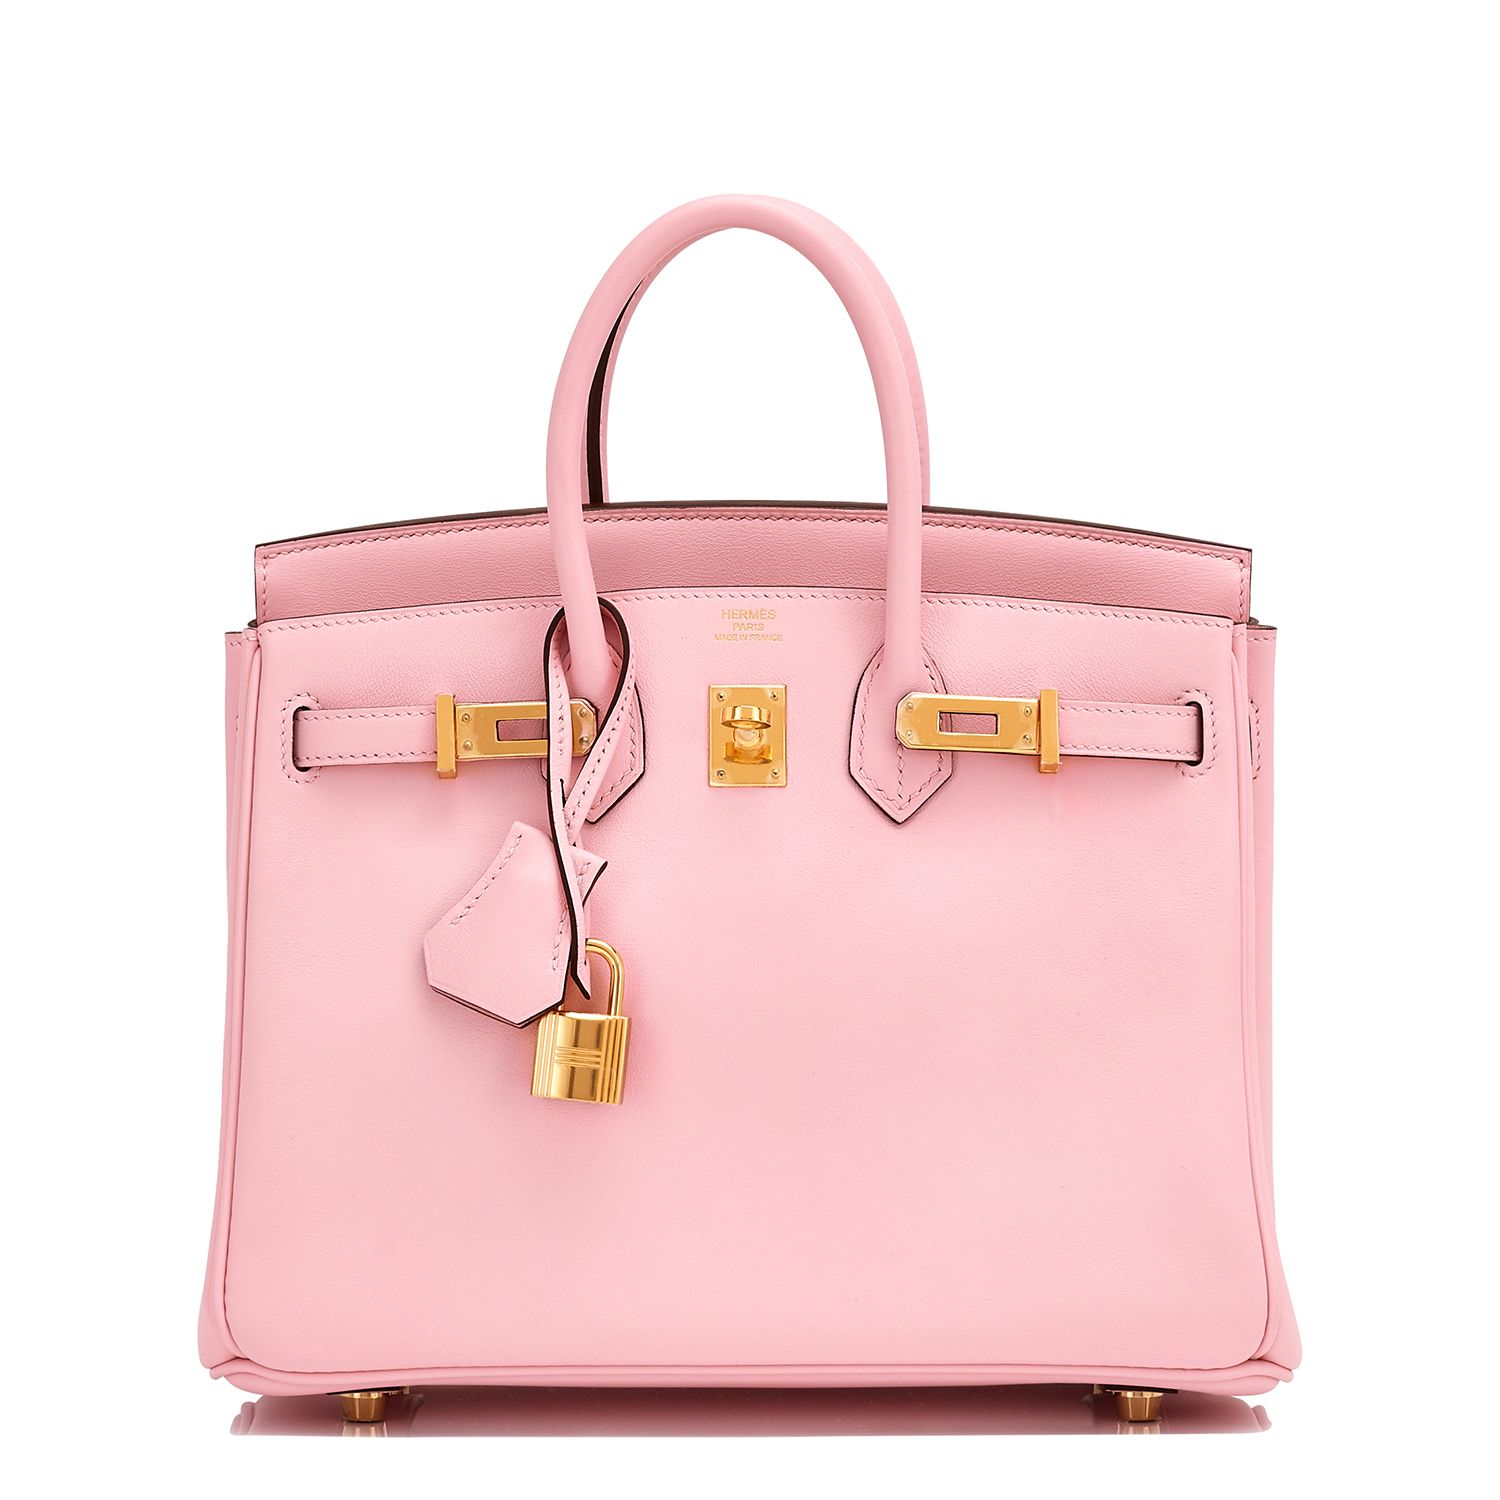 Hermes Birkin Bag Rose Sakura Swift Gold Hardware